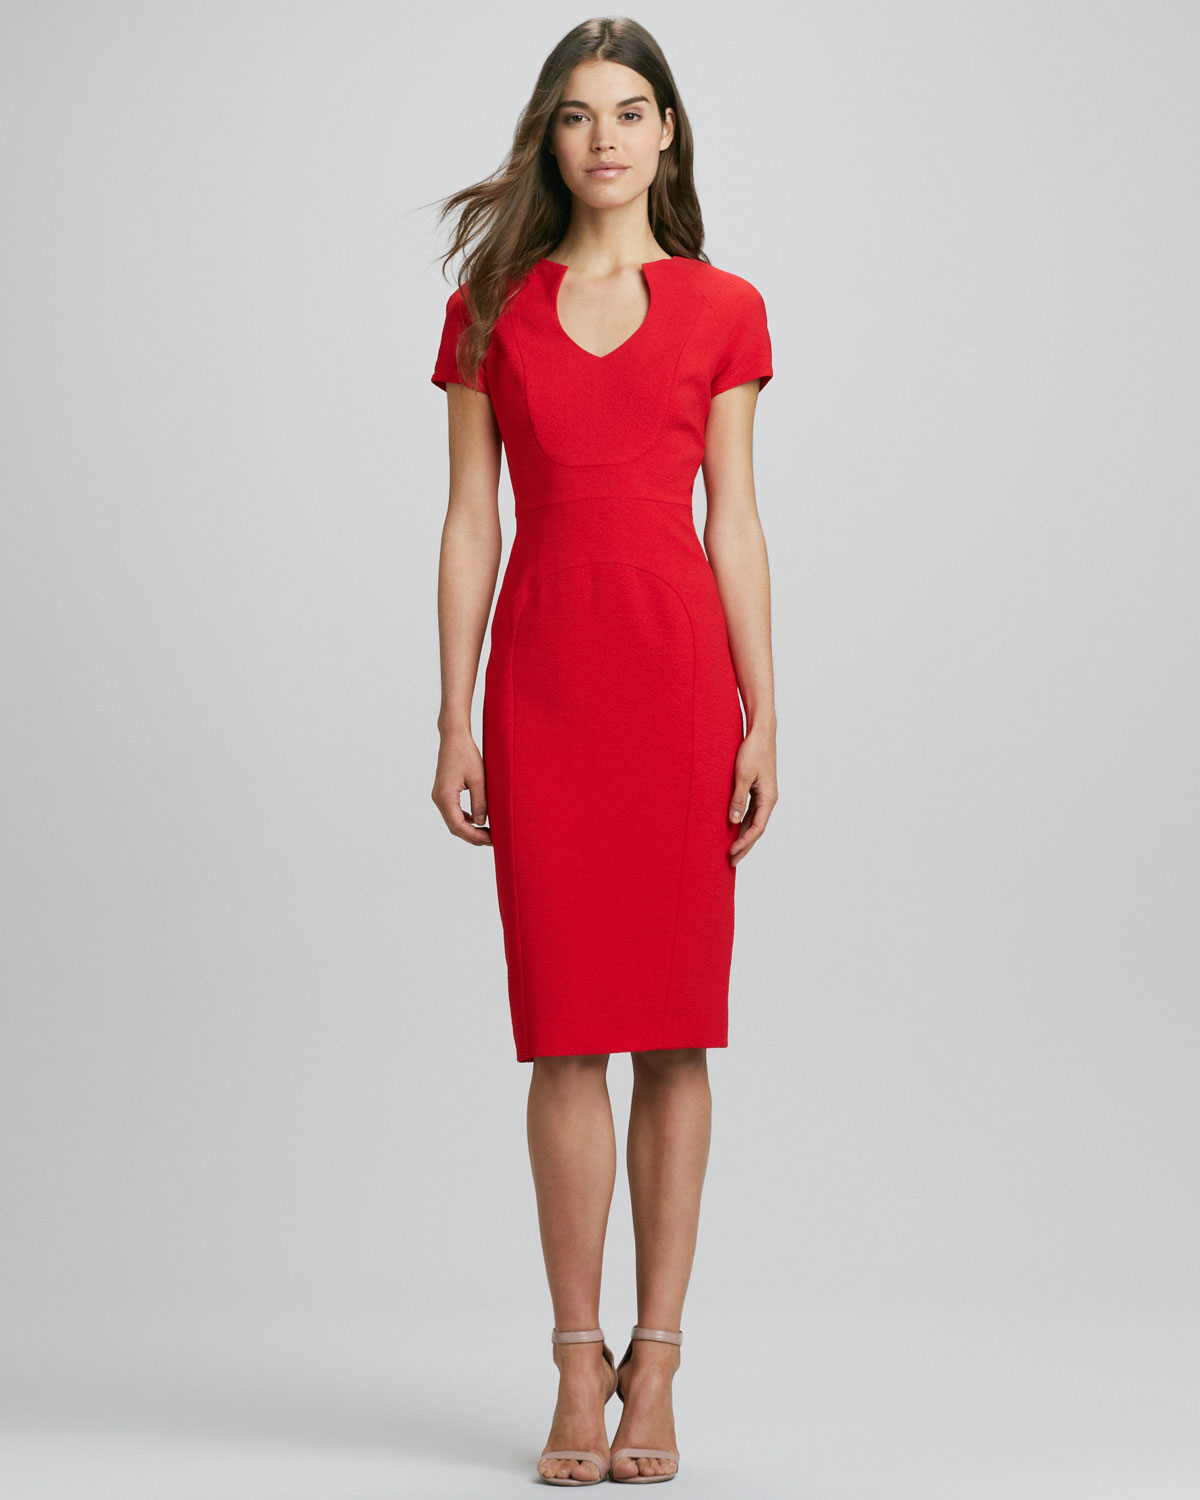 Black halo Gypsy Capsleeve Sheath Dress in Red | Lyst